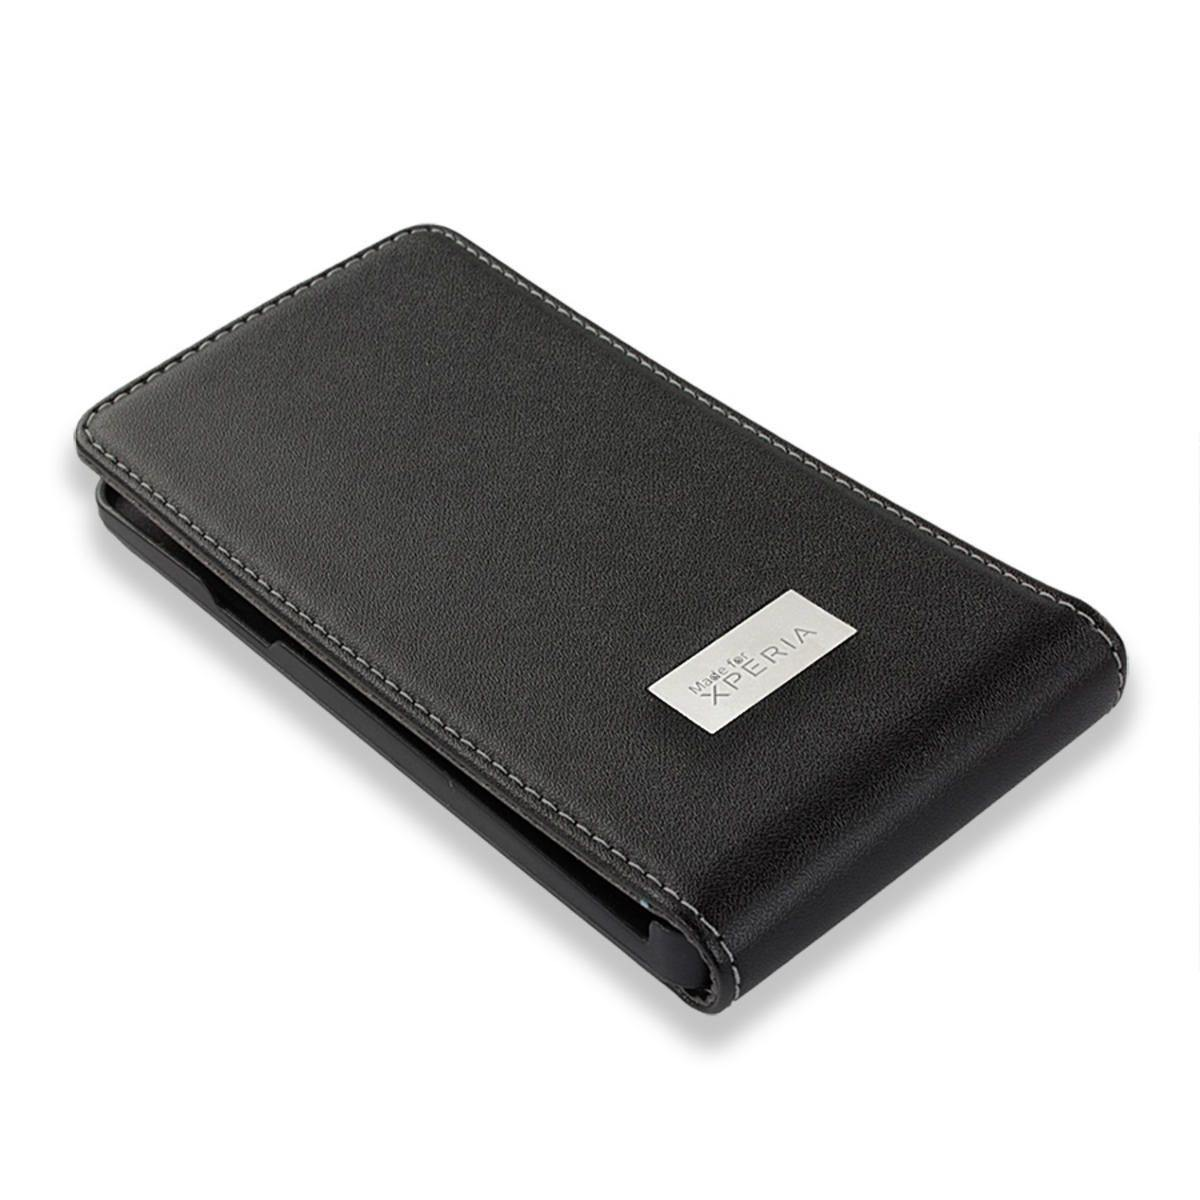 Sony Xperia T SMA5122B Leather Flip Case - Black